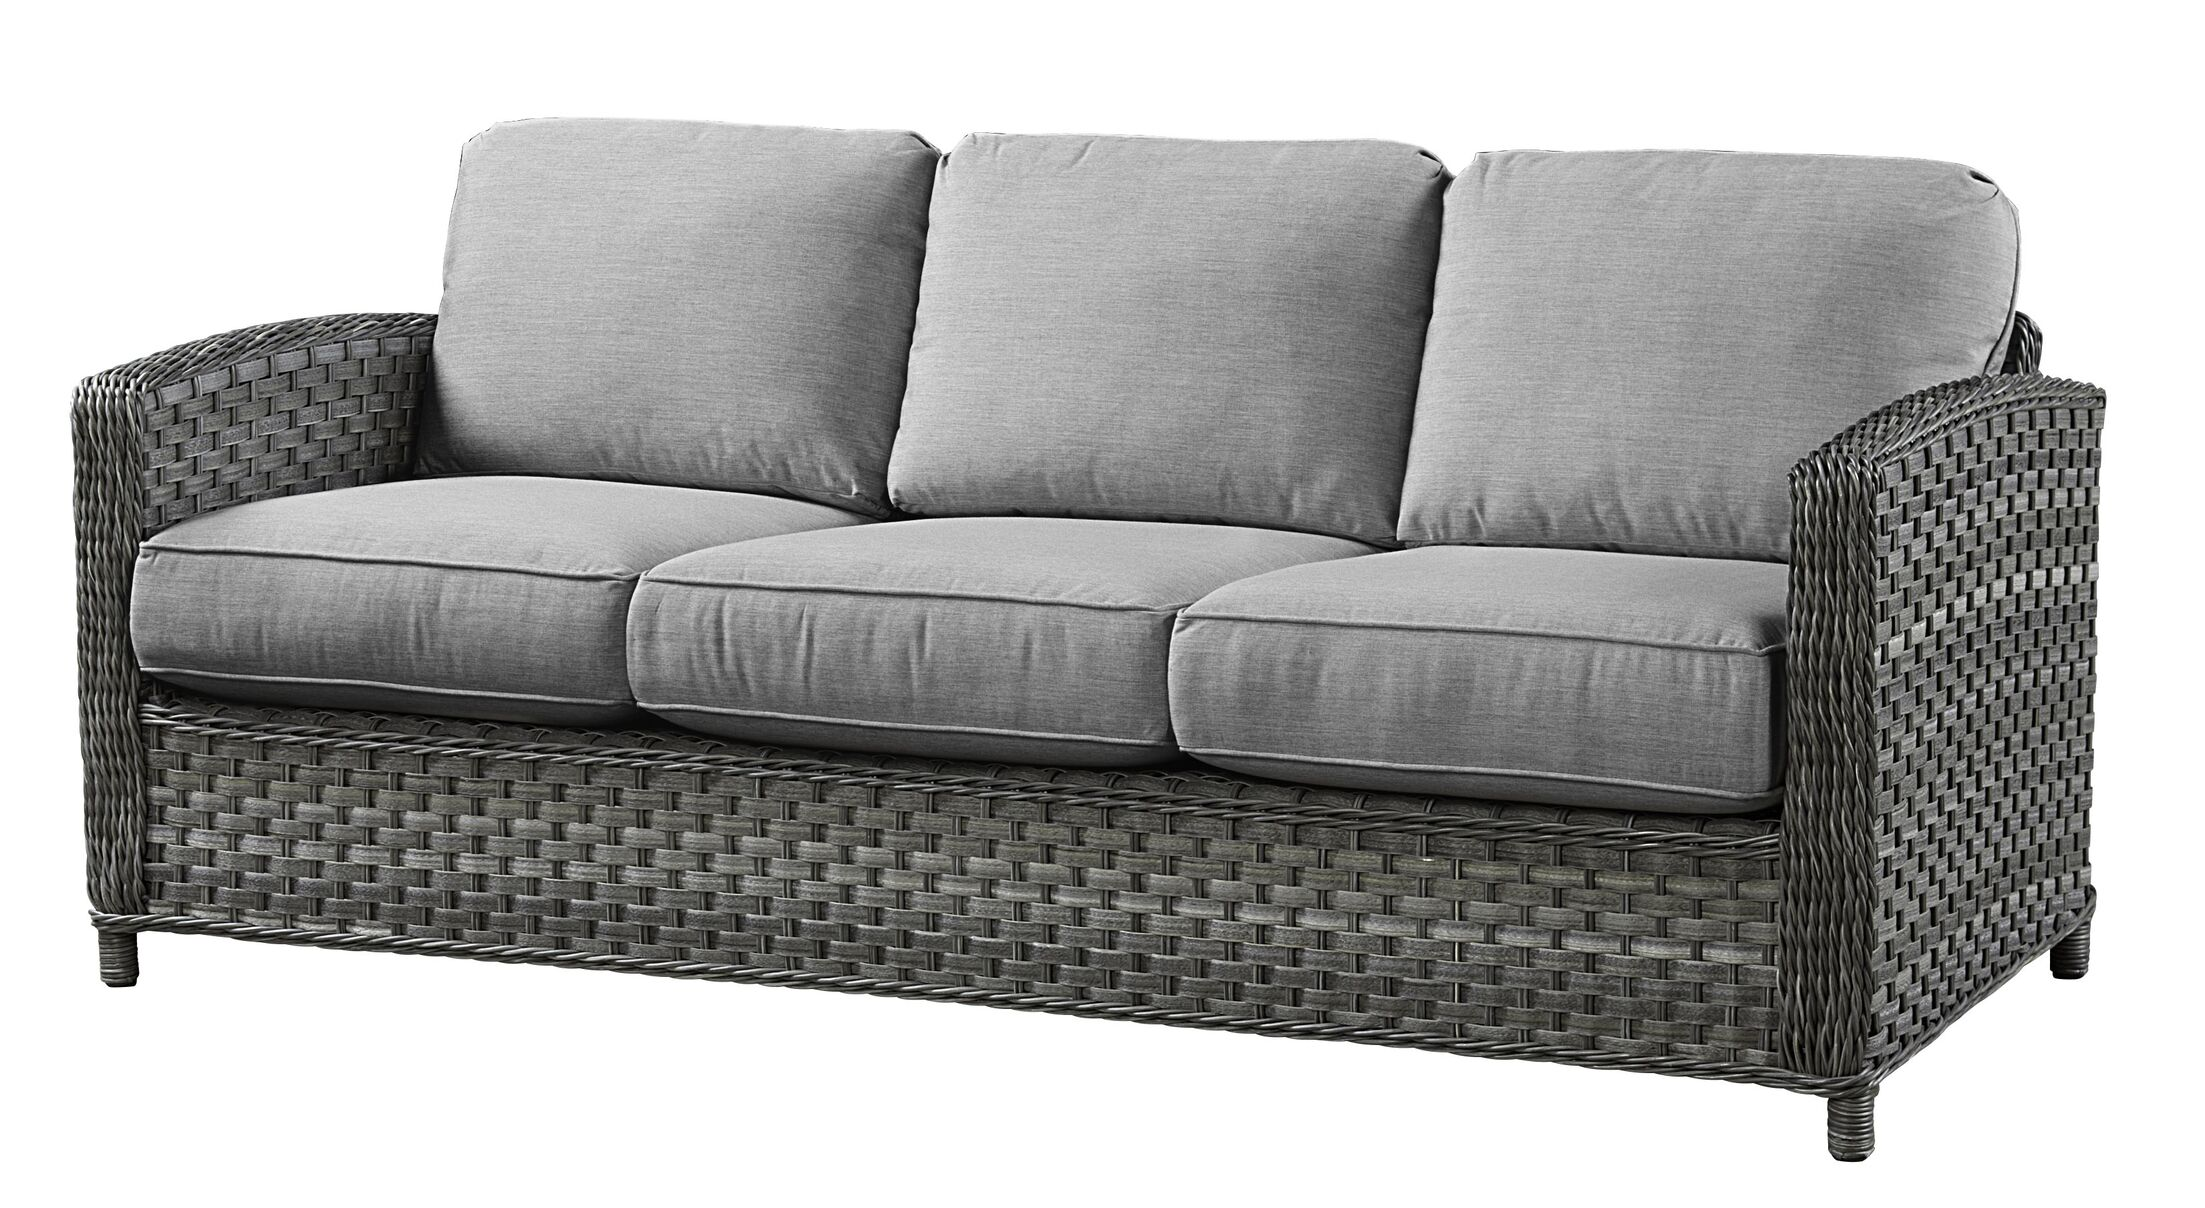 Sofa with Cushions Fabric: Flagship Mineral